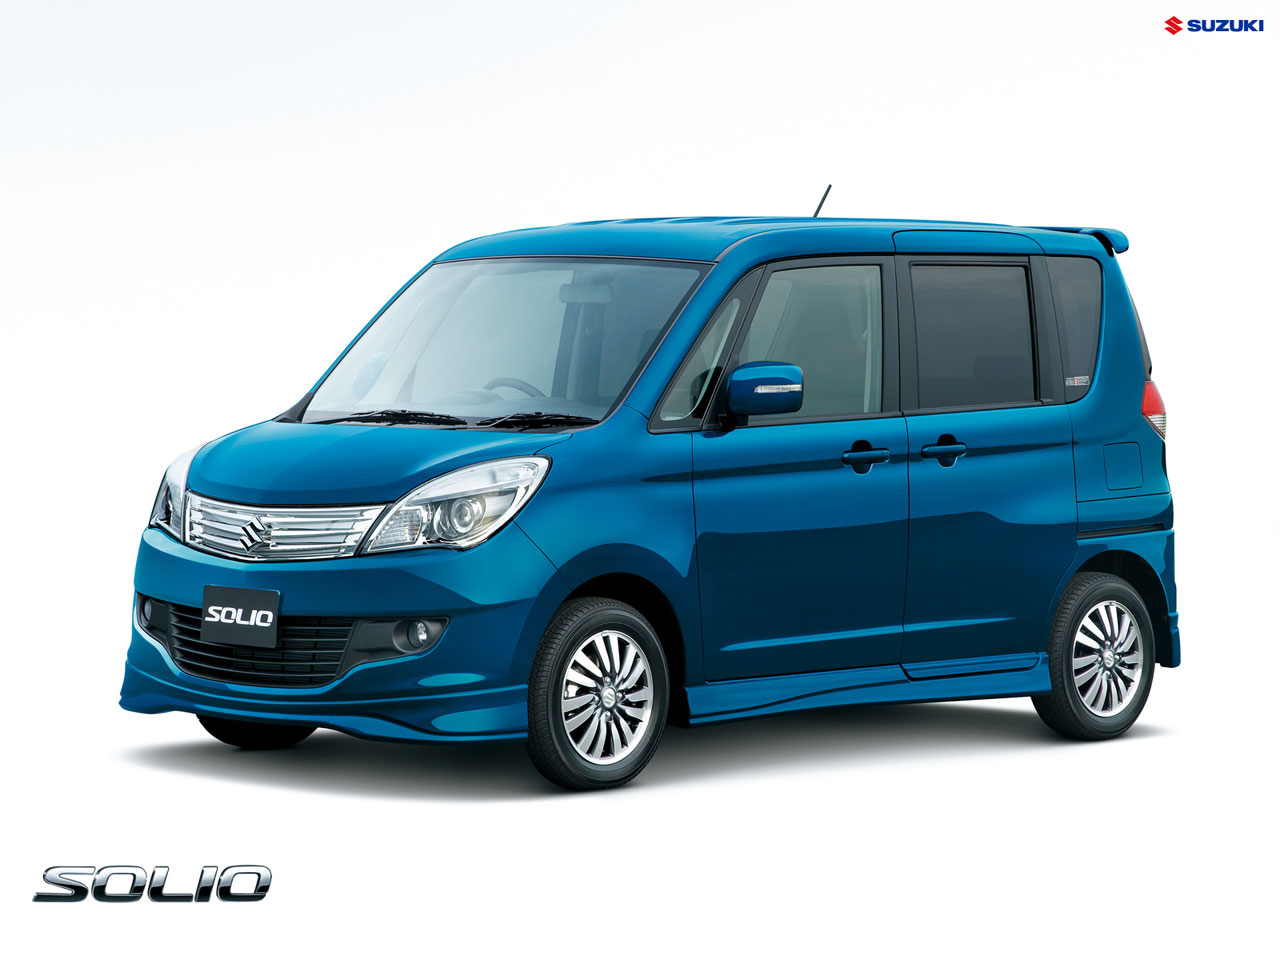 Suzuki solio photo - 1